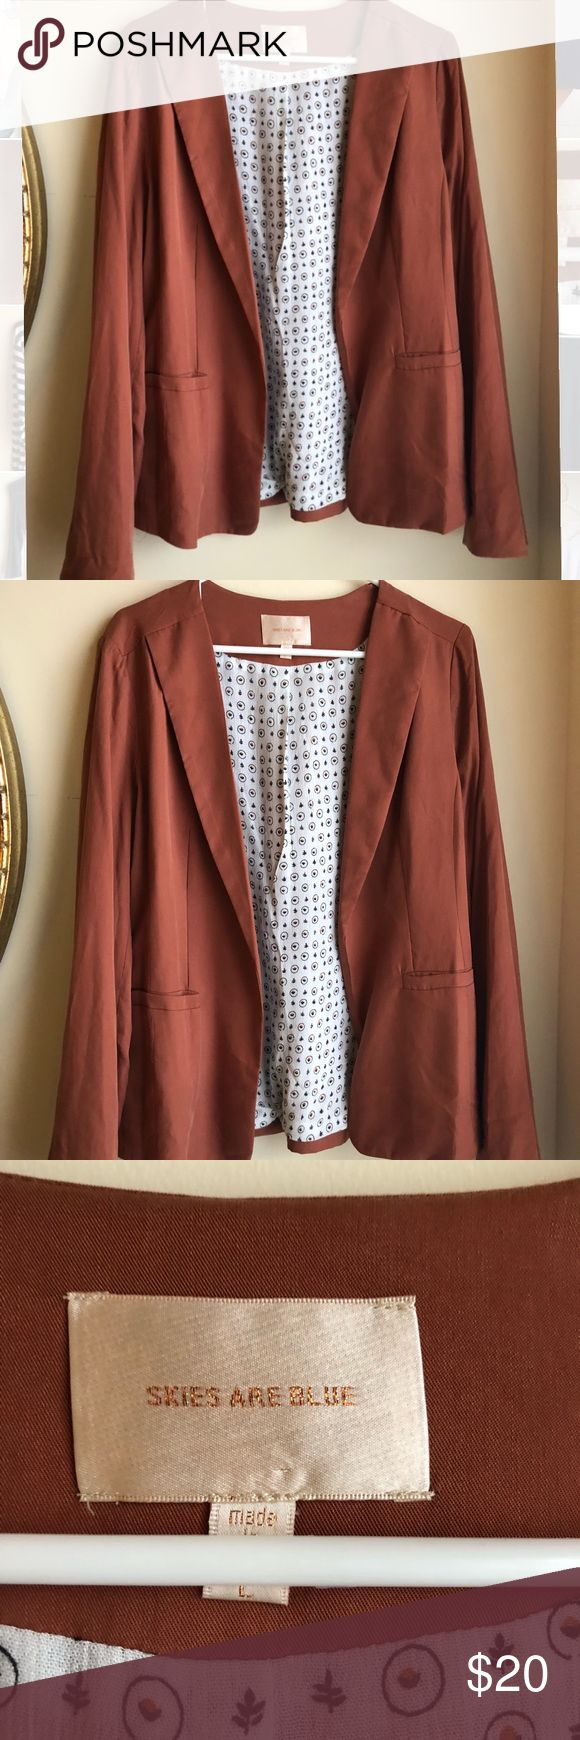 LAST CHANCE 24 Hr Sale Orange Blazer In perfect condition Burnt orange color - perfect for spring Fits true to size **first picture to show style Skies Are Blue Jackets & Coats Blazers